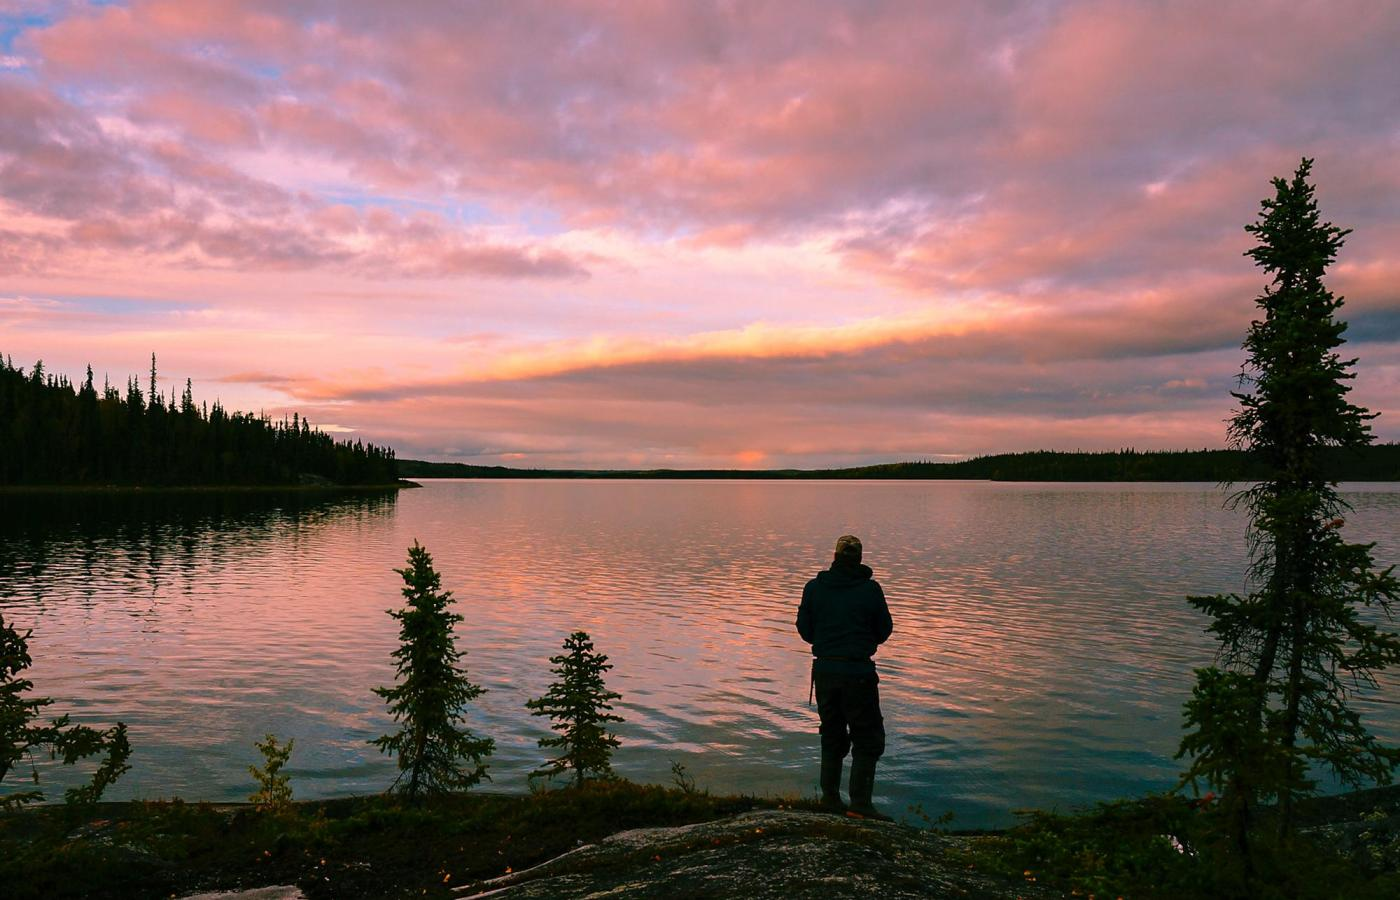 a person takes in the lakeside view, under the pink midnight sun